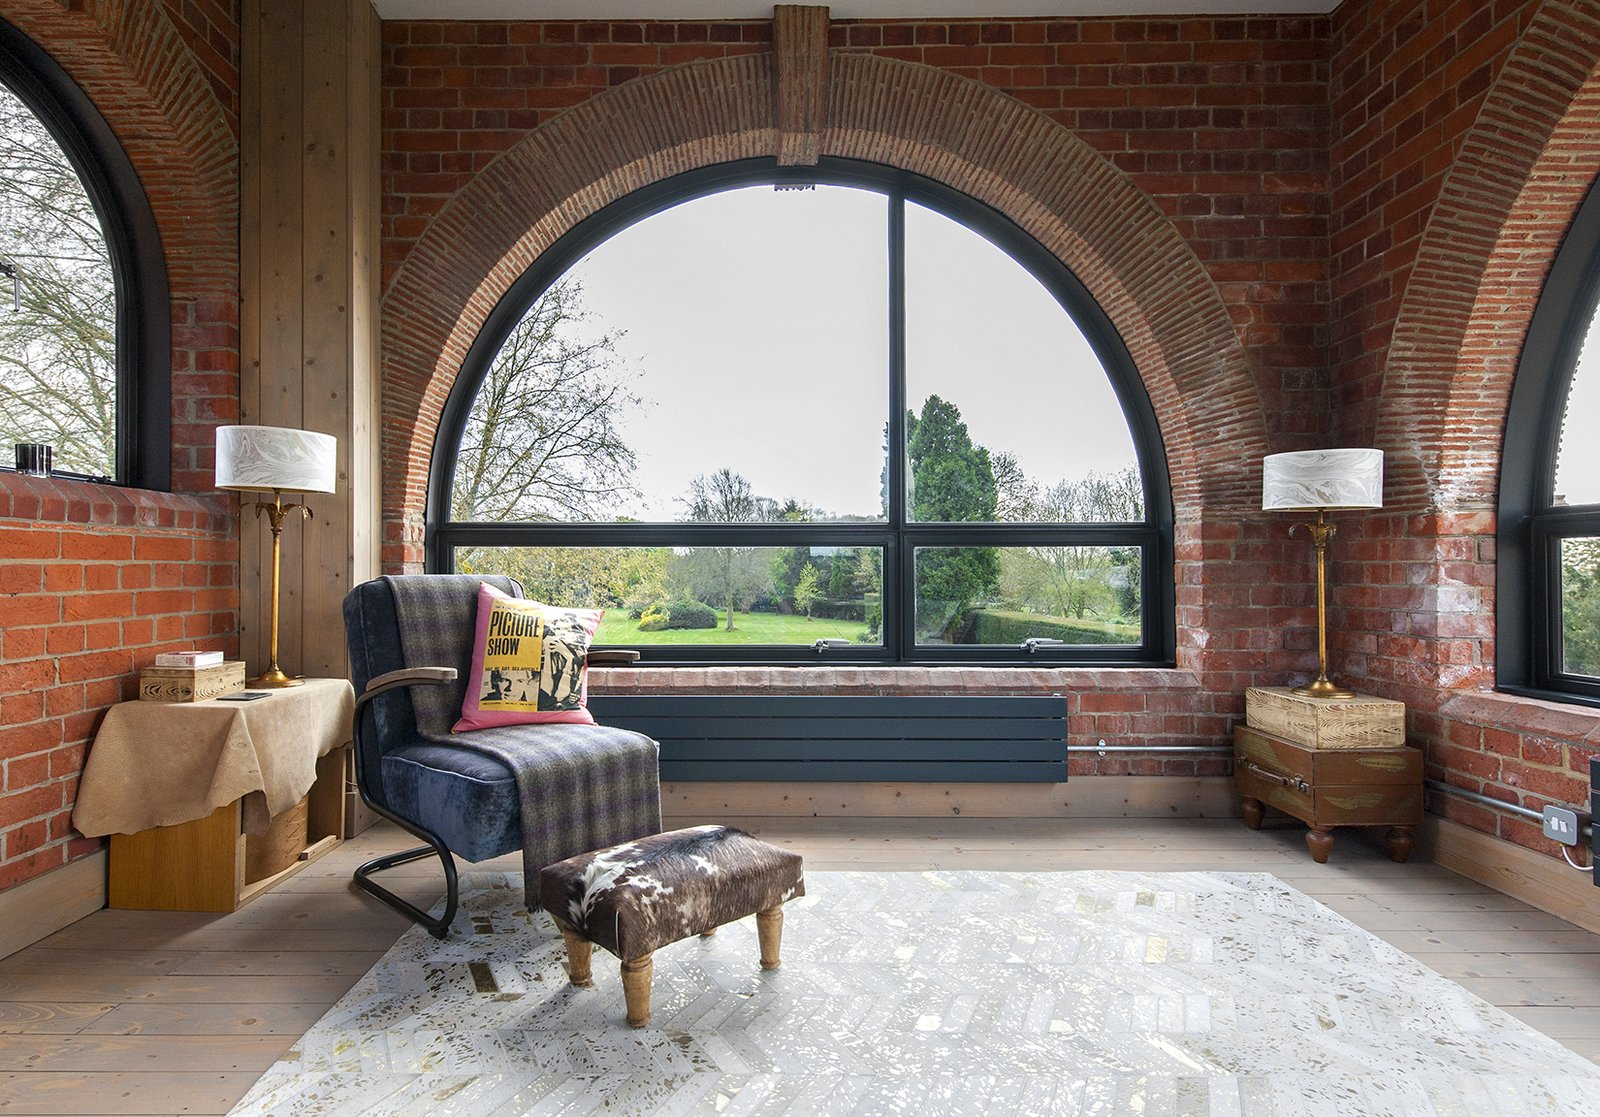 Living Room, Table Lighting, End Tables, Chair, Lamps, and Light Hardwood Floor The facade is punctuated by windows of various shapes, including half-moons by Crittall. The armchair and chevron rug are from Graham & Green.  Lister Tower from A Refurbished, Victorian-Era Brick Tower in Hampshire